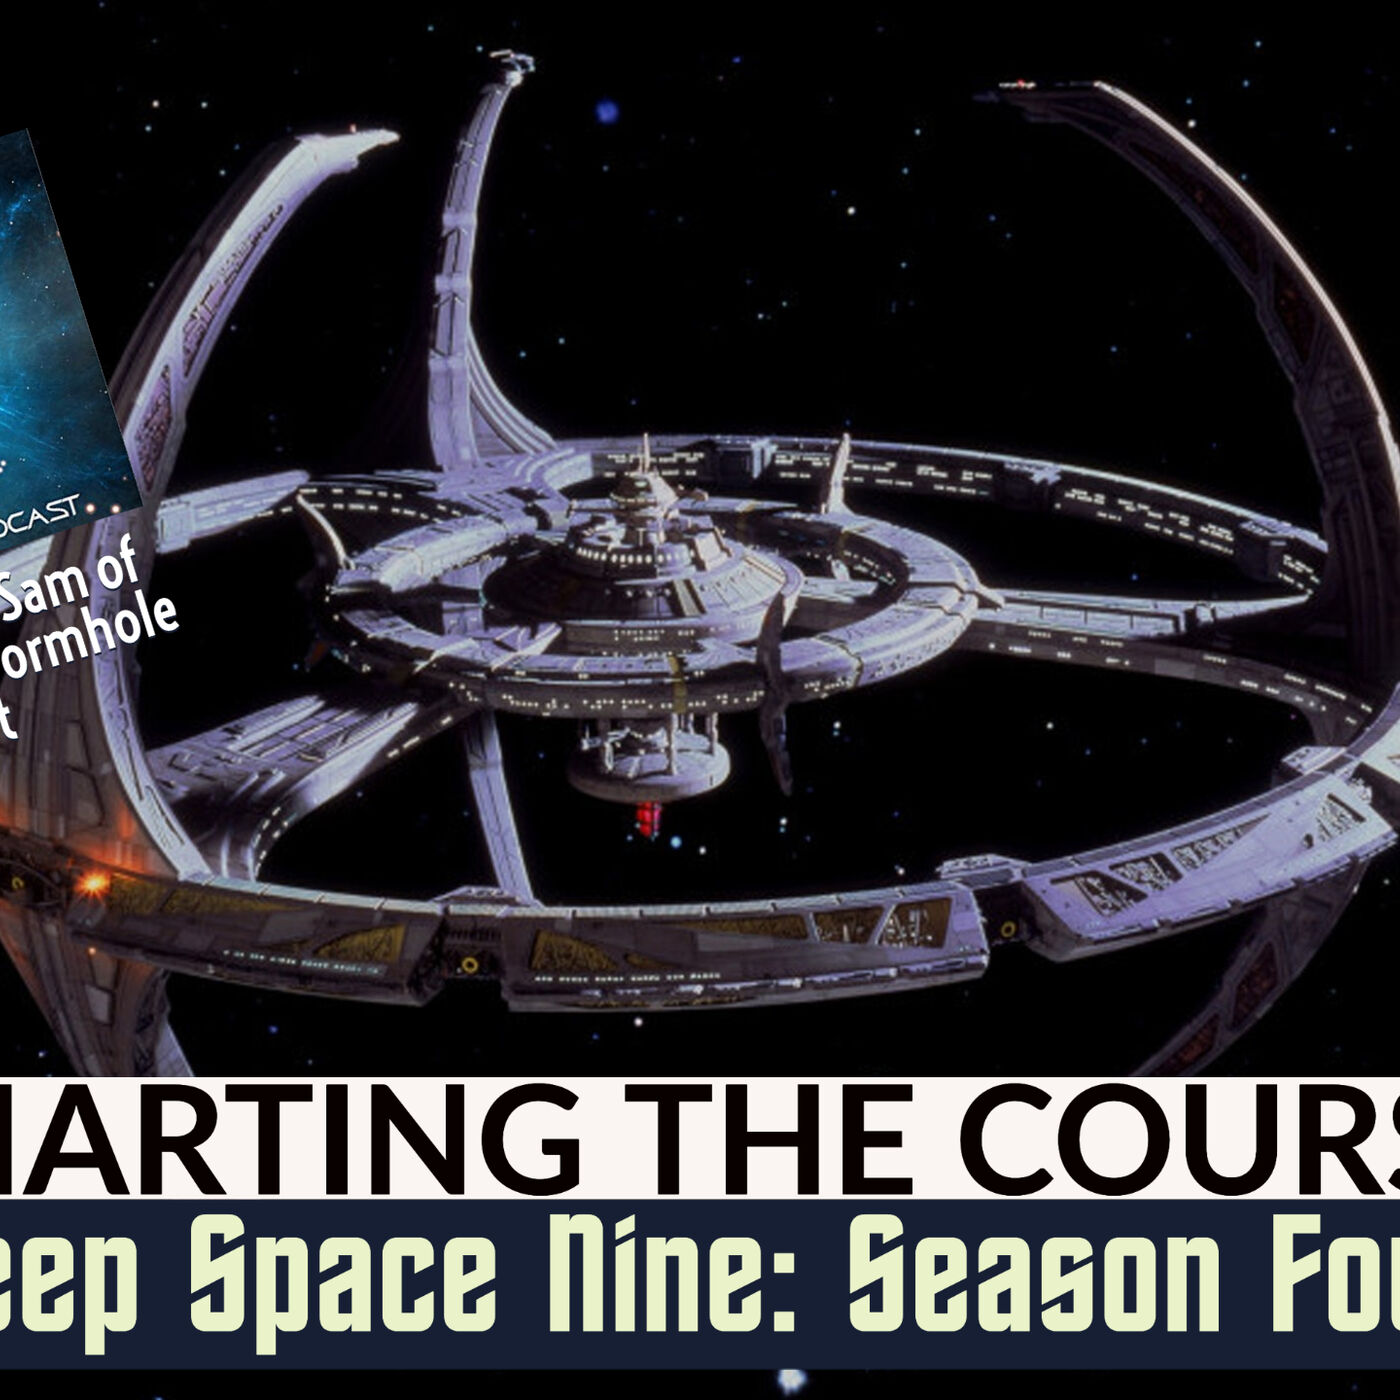 Charting the Course - DS9 Season 4